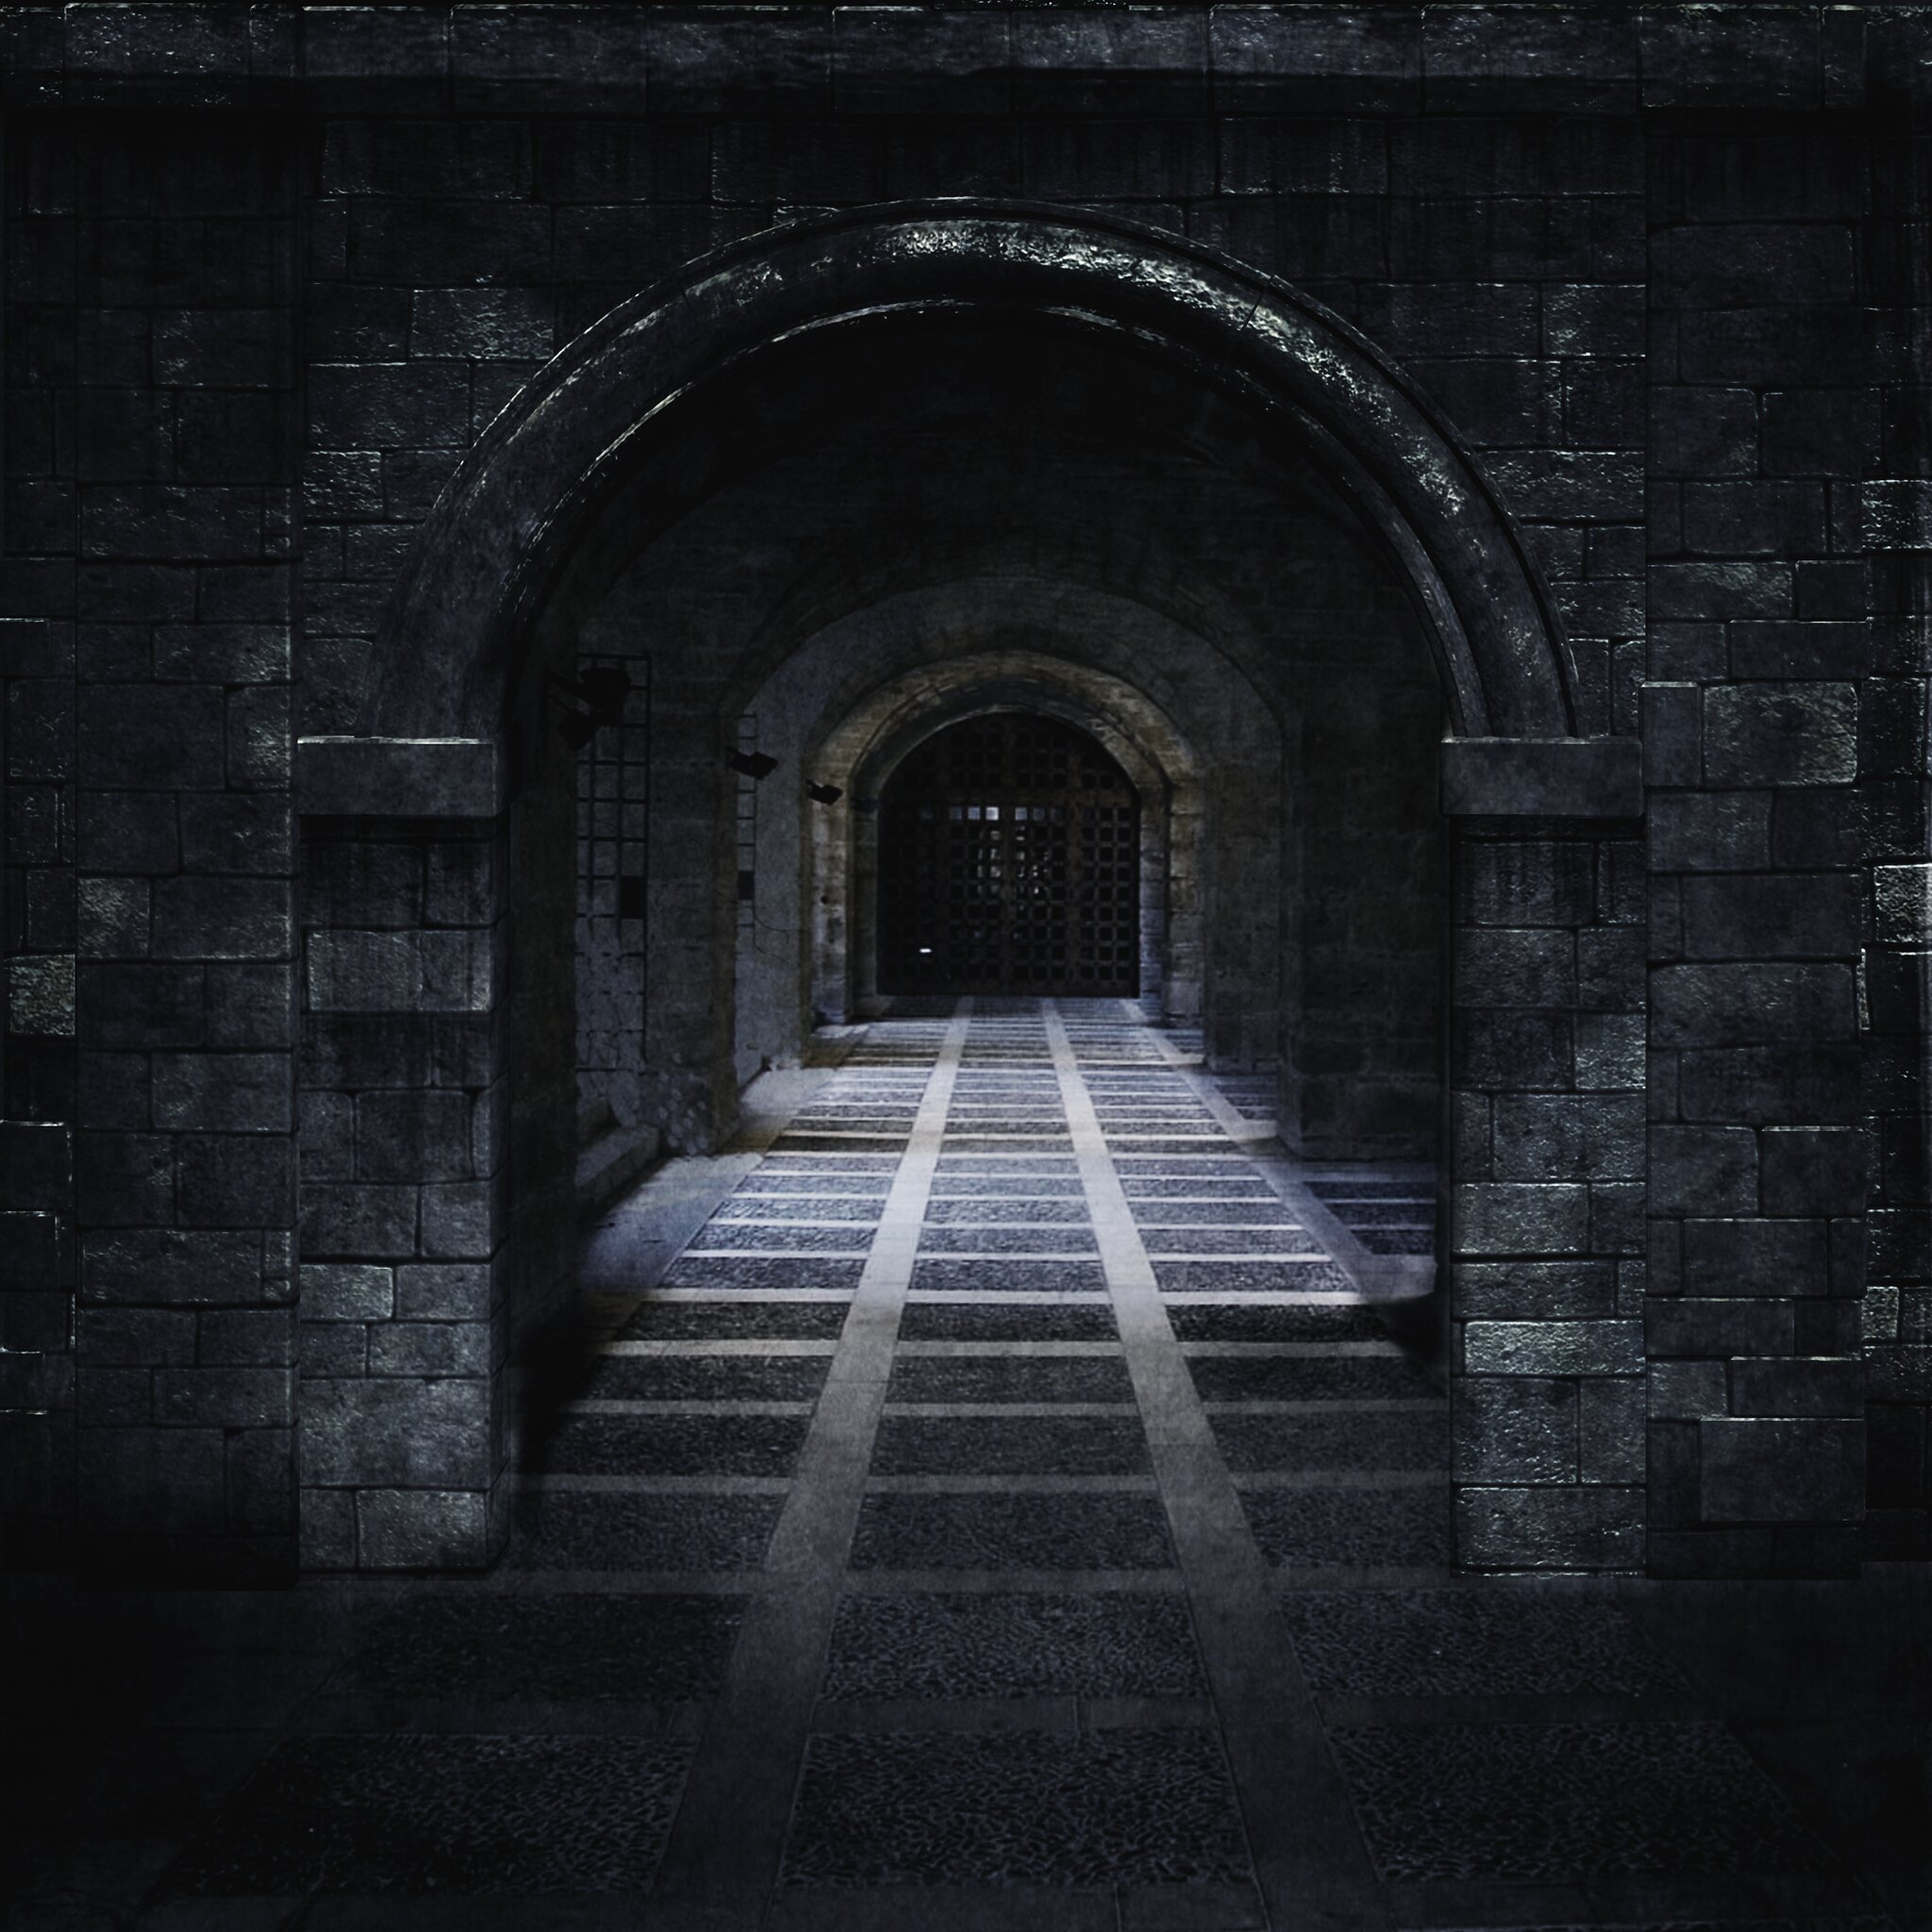 Dimly lit tiled corridor through archways . A heavy metal grate waits at the end. What's behind it?